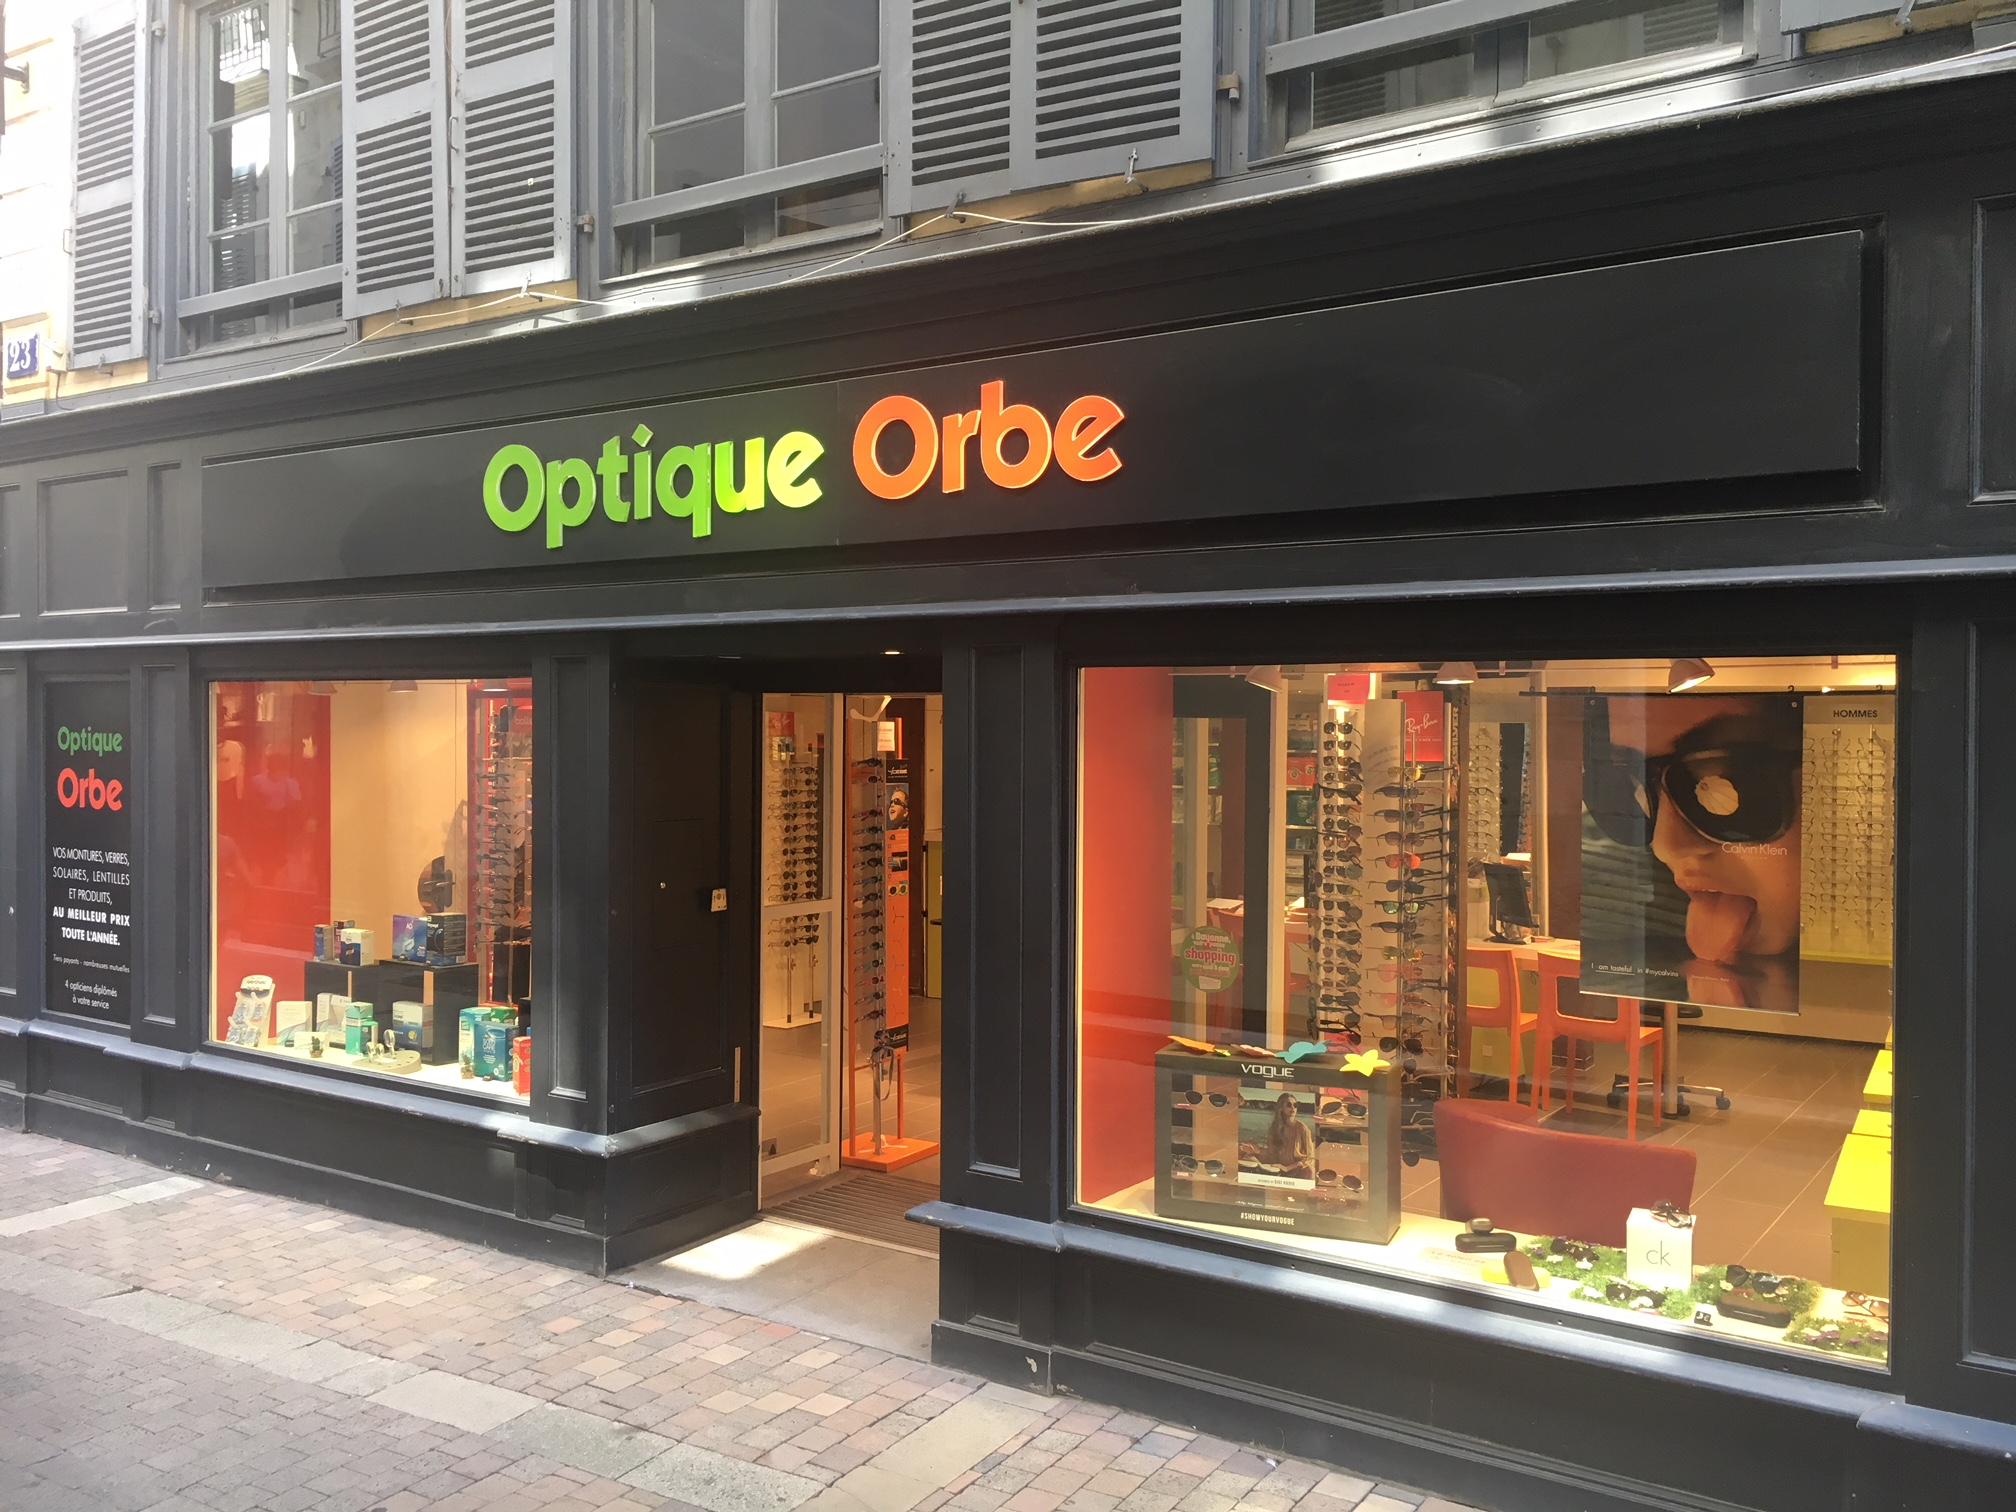 Opticien : OPTIQUE ORBE, 23 Rue Orbe, 64100 BAYONNE